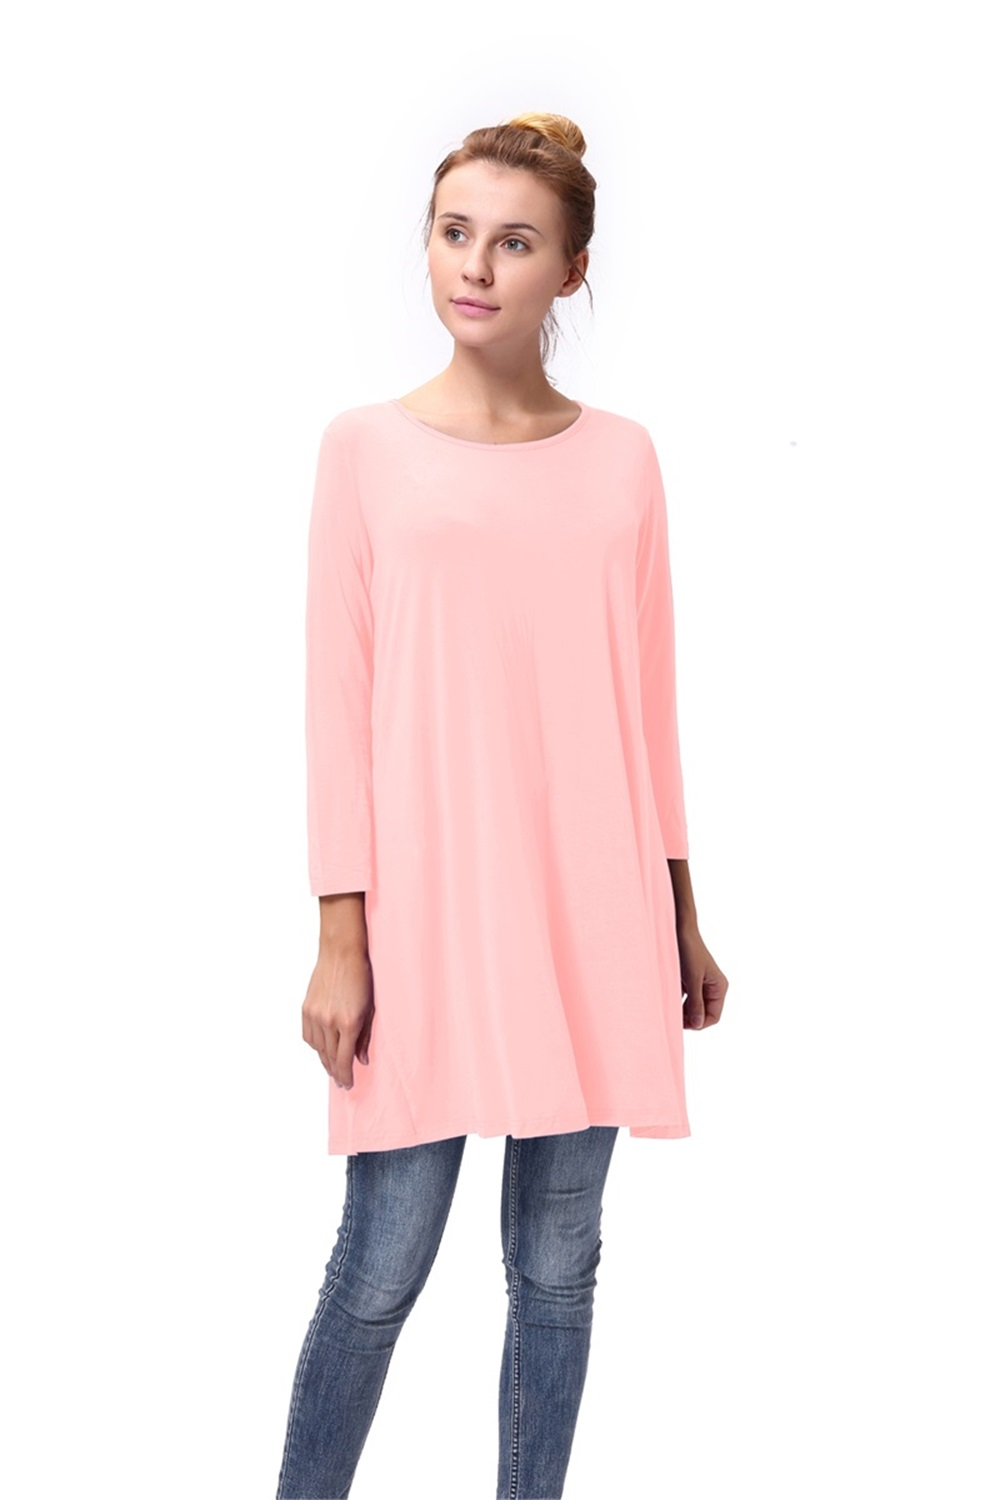 Women-039-s-Long-Tunic-Top-3-4-Sleeve-Dolman-Boat-Neck-USA-Dress-S-M-L-1X-2X-3X-PLUS thumbnail 37